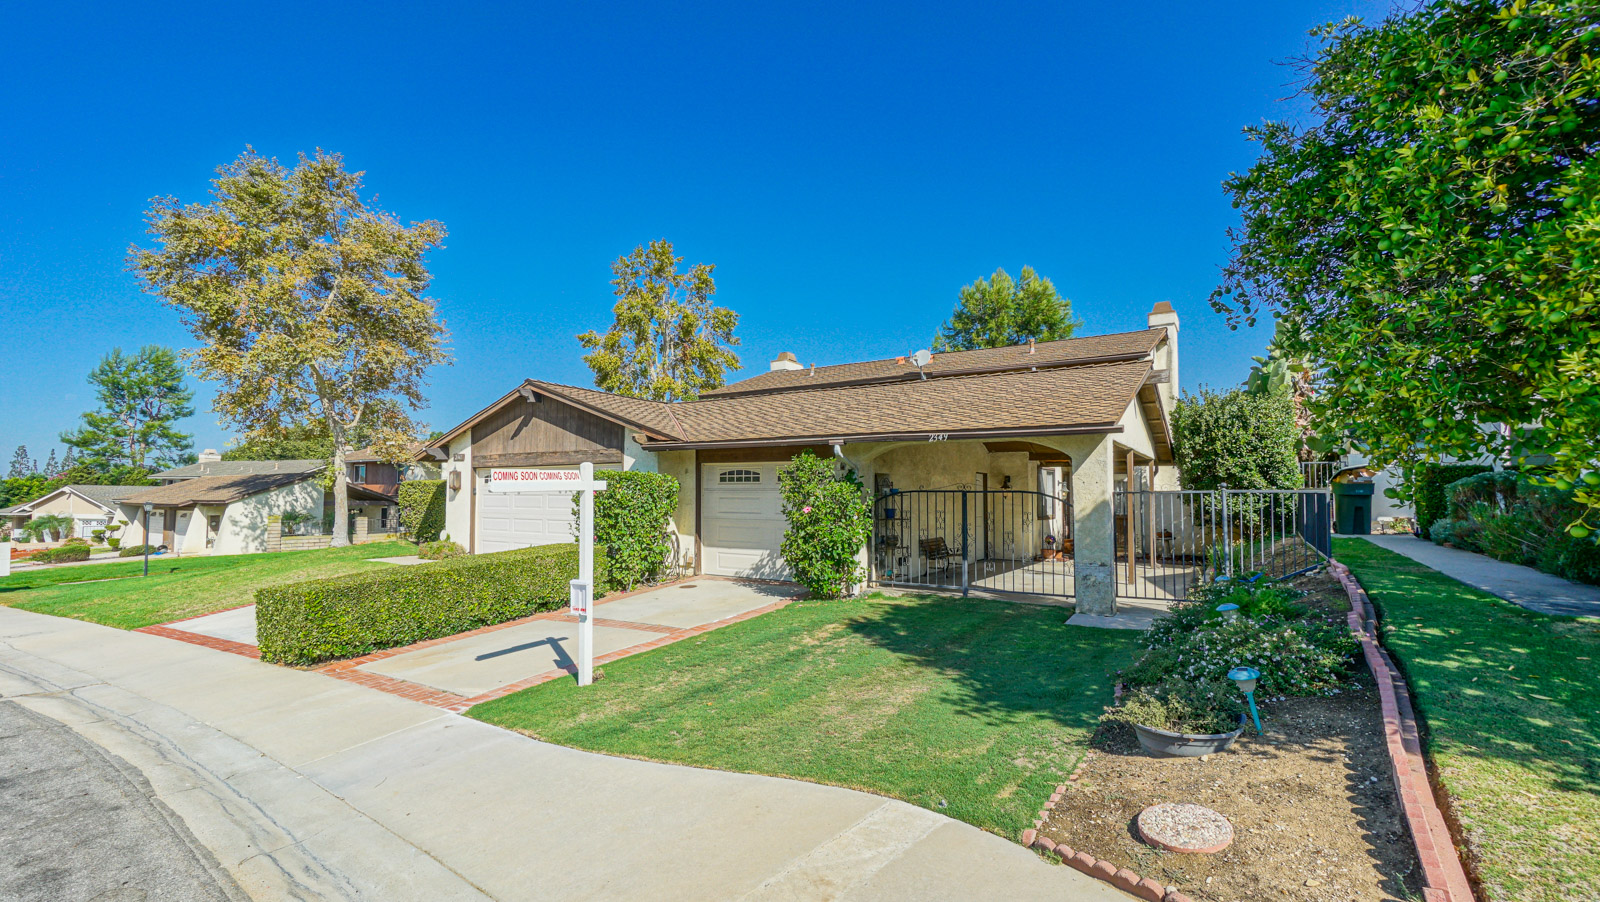 2349 Carrotwood Dr. Brea, Ca. 92821